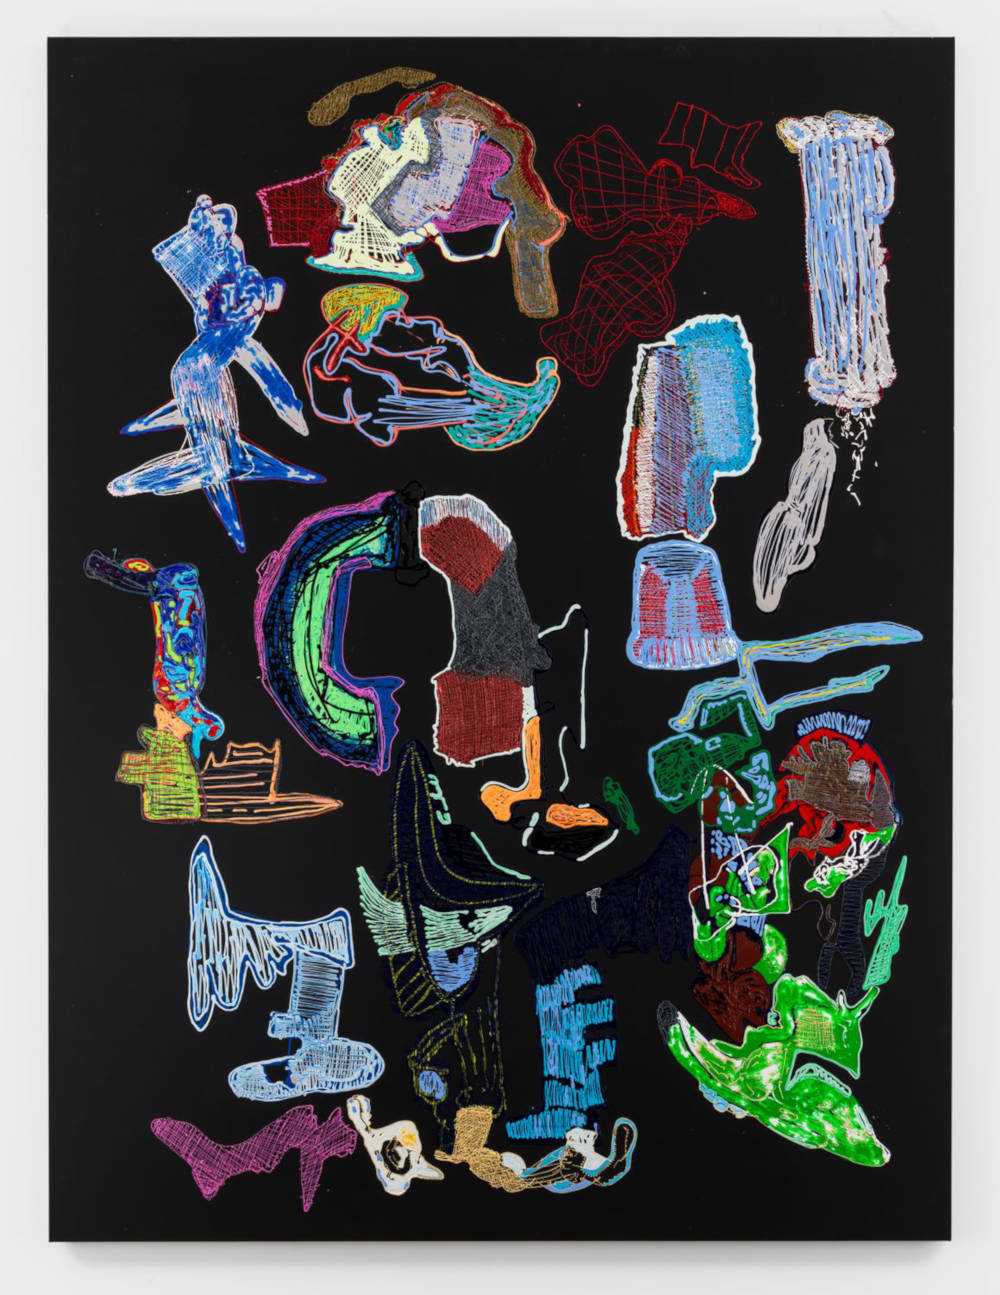 Leelee Kimmel, This High or The Godfather, 2018. Acrylic on canvas 276,9 x 208,3 x 3,8 cm 109 x 82 x 1 1/2 inches © Leelee Kimmel - Photo: Maris Hutchinson. Courtesy of the Artist and Almine Rech